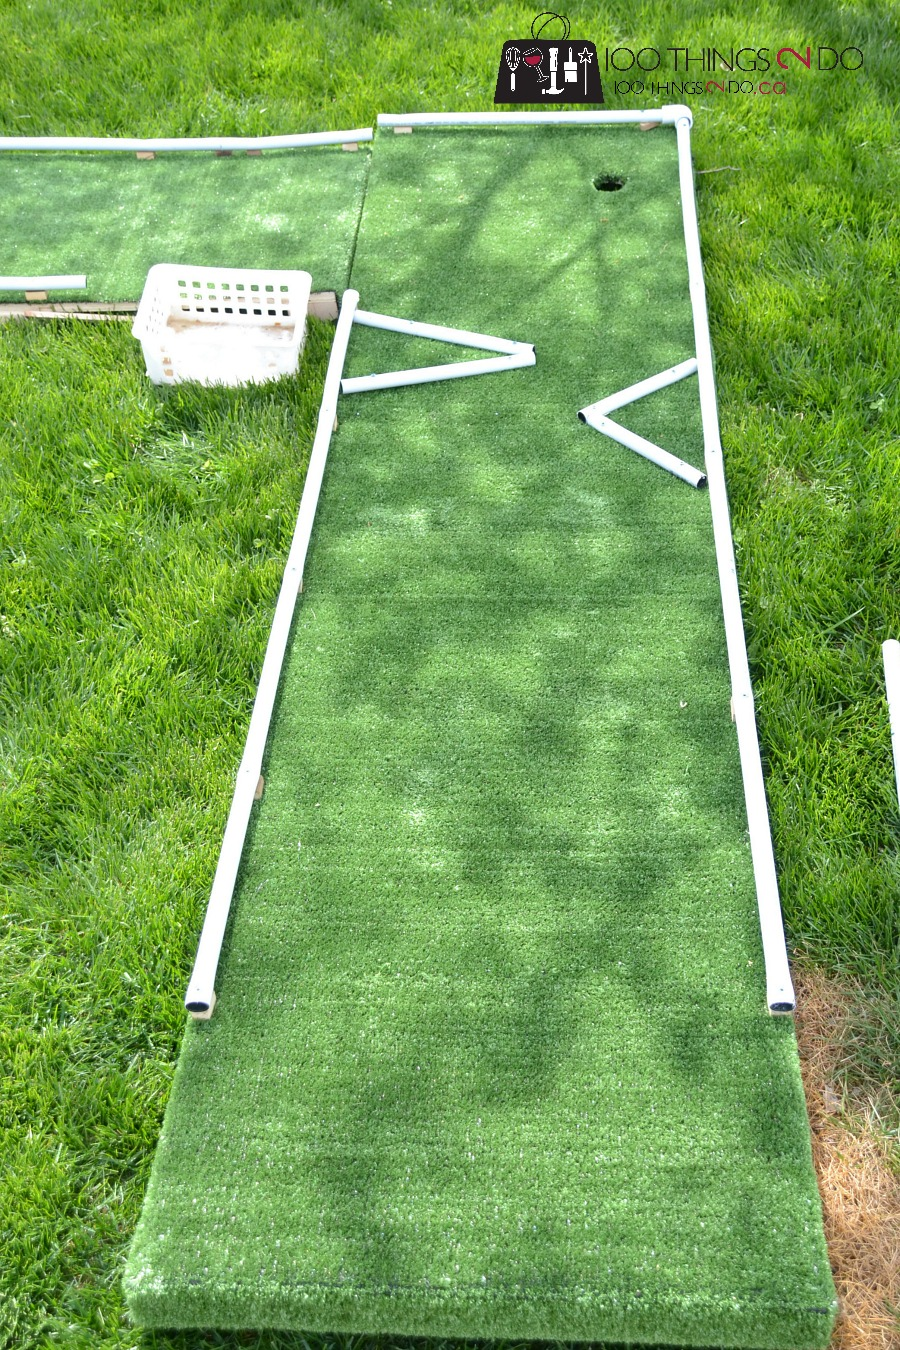 DIY mini golf, mini-golf, mini-putt, DIY mini-putt, backyard games, backyard fun, DIY backyard games